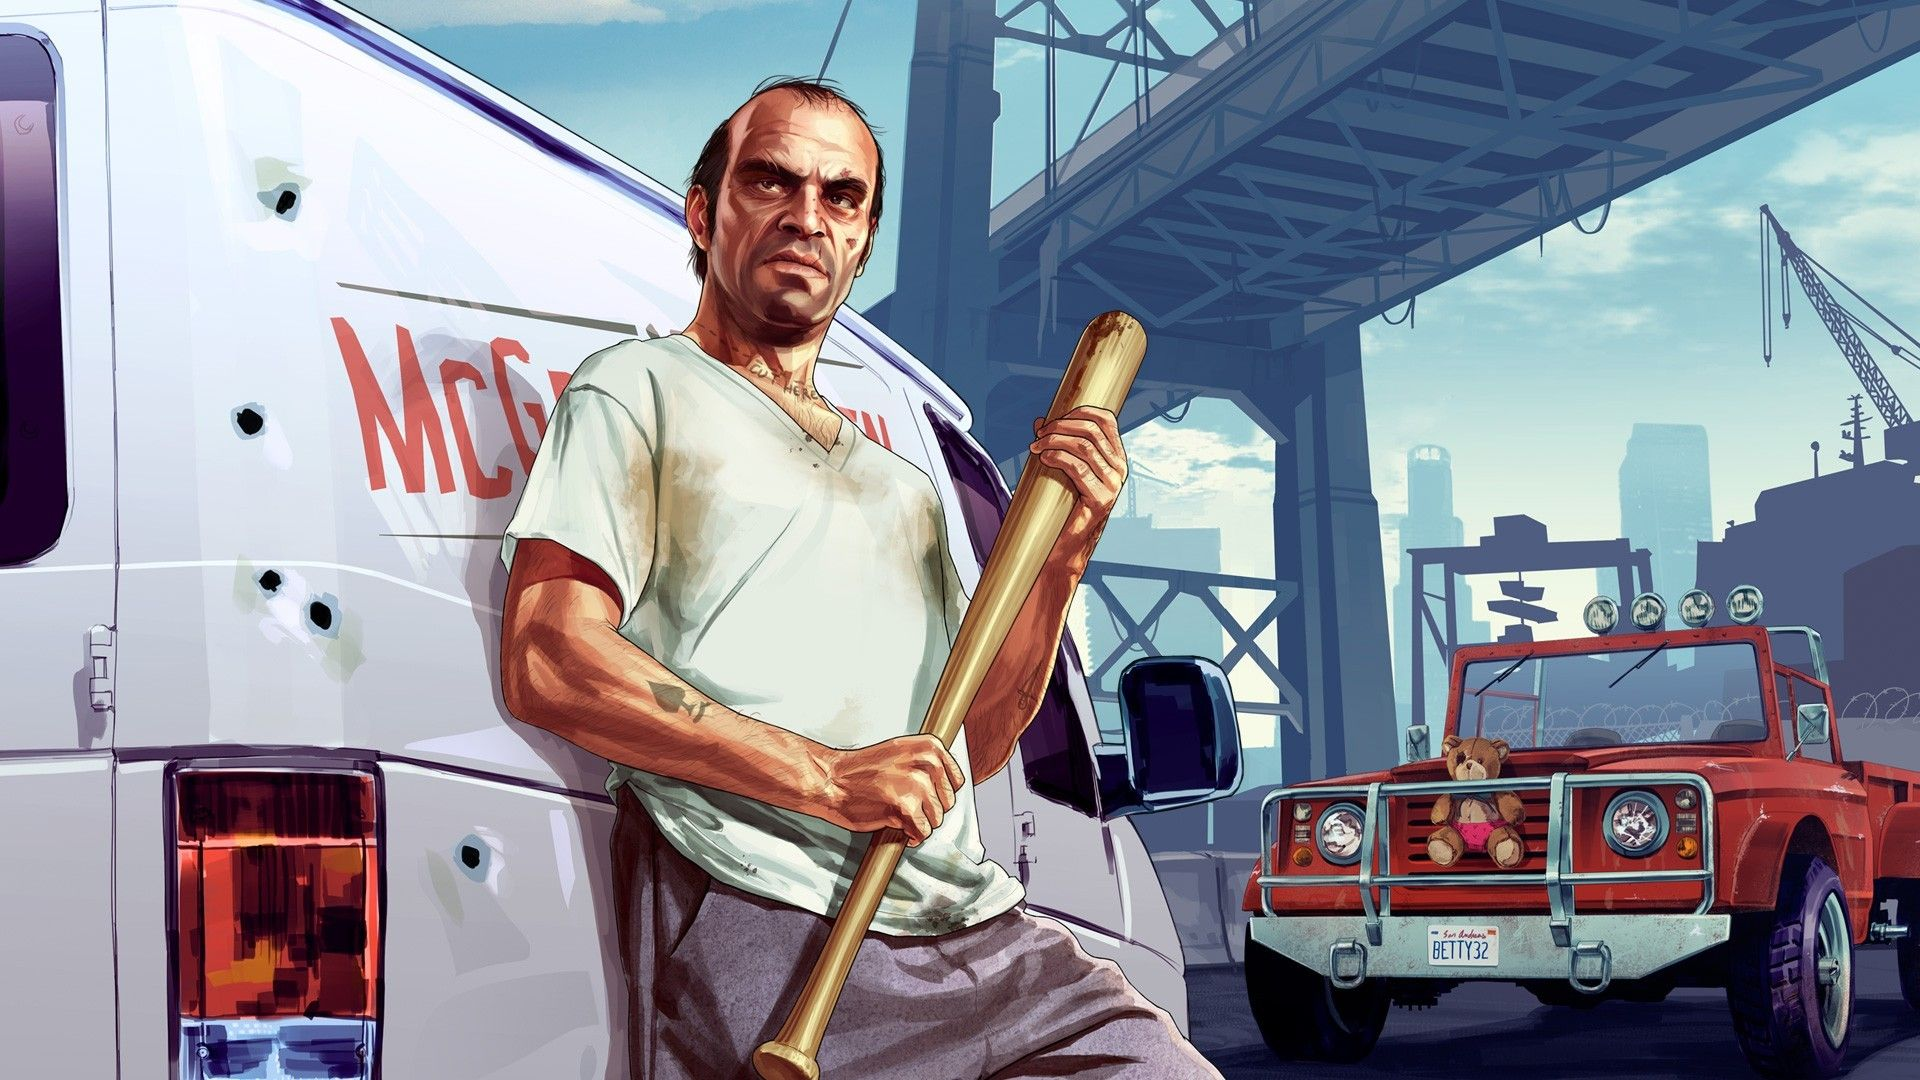 Gta 5 Trevor Wallpapers High Resolution On Wallpaper 1080p Hd